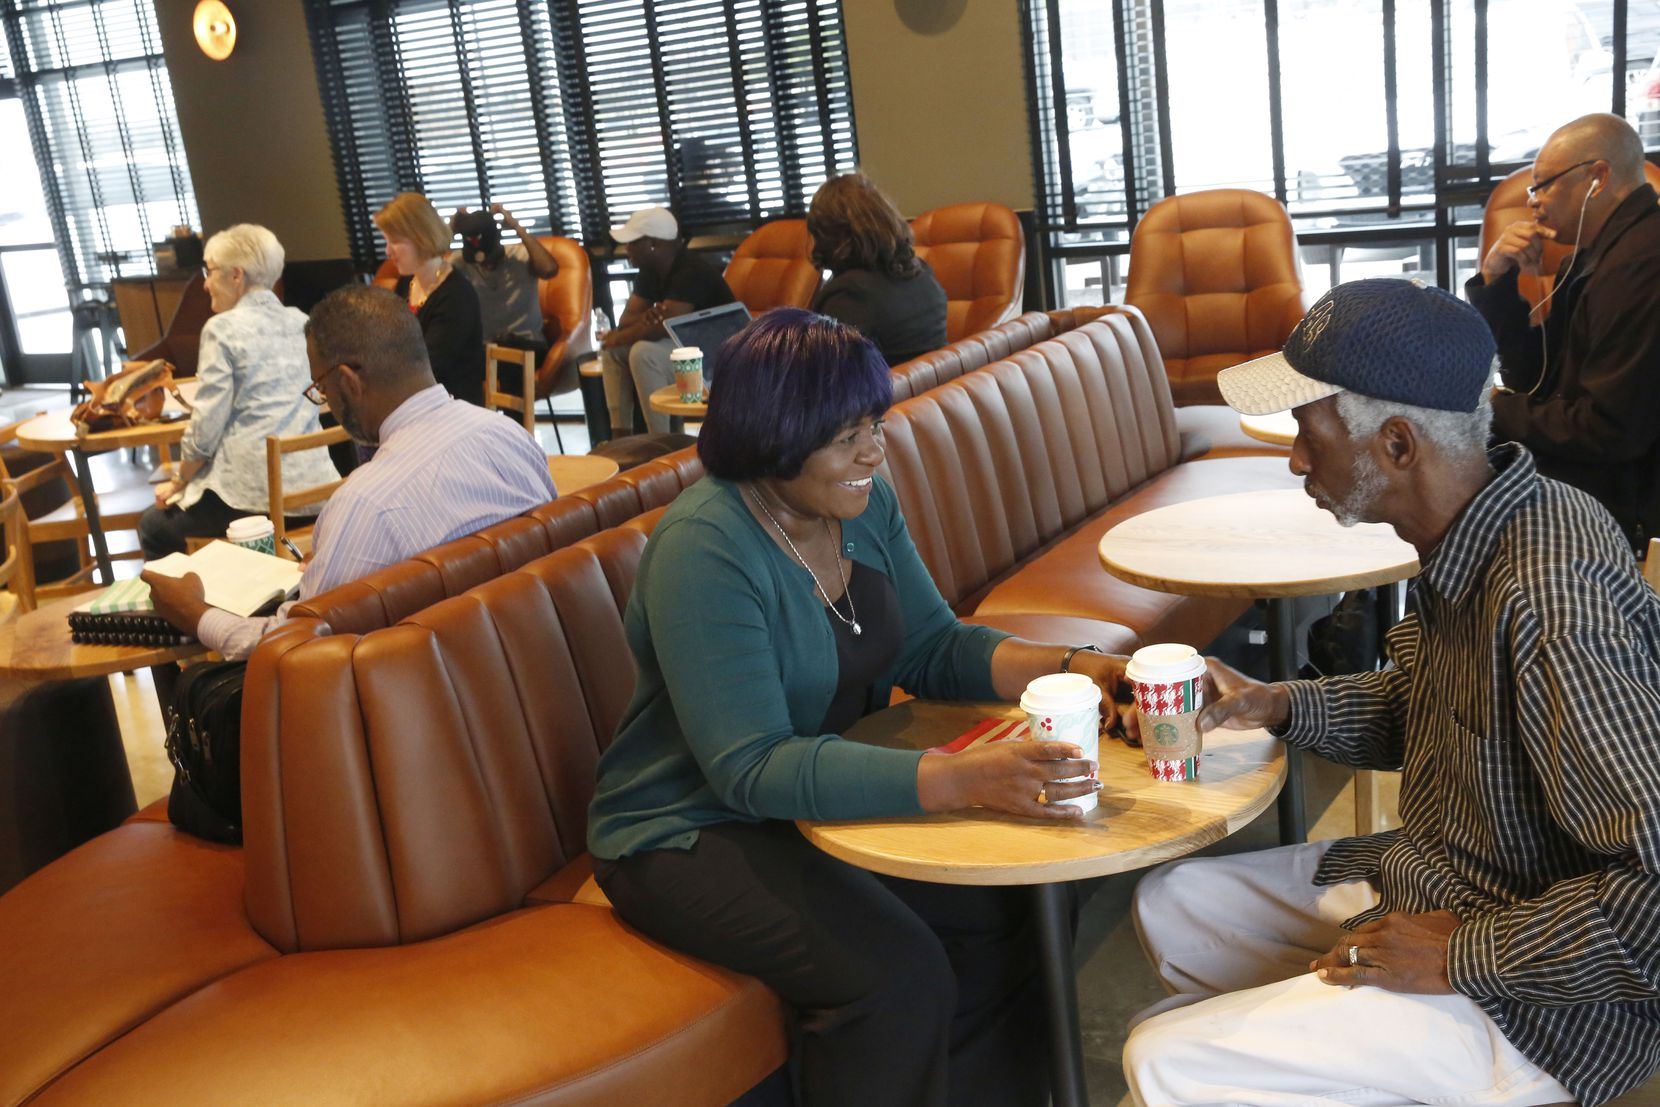 C.C. Ward and her husband, Harry Ward, of Duncanville, Texas, drink coffee at the newly opened Starbucks in the parking lot of Southwest Center Mall in Dallas Nov. 30, 2018. The renovated shopping center is now called Red Bird Mall.